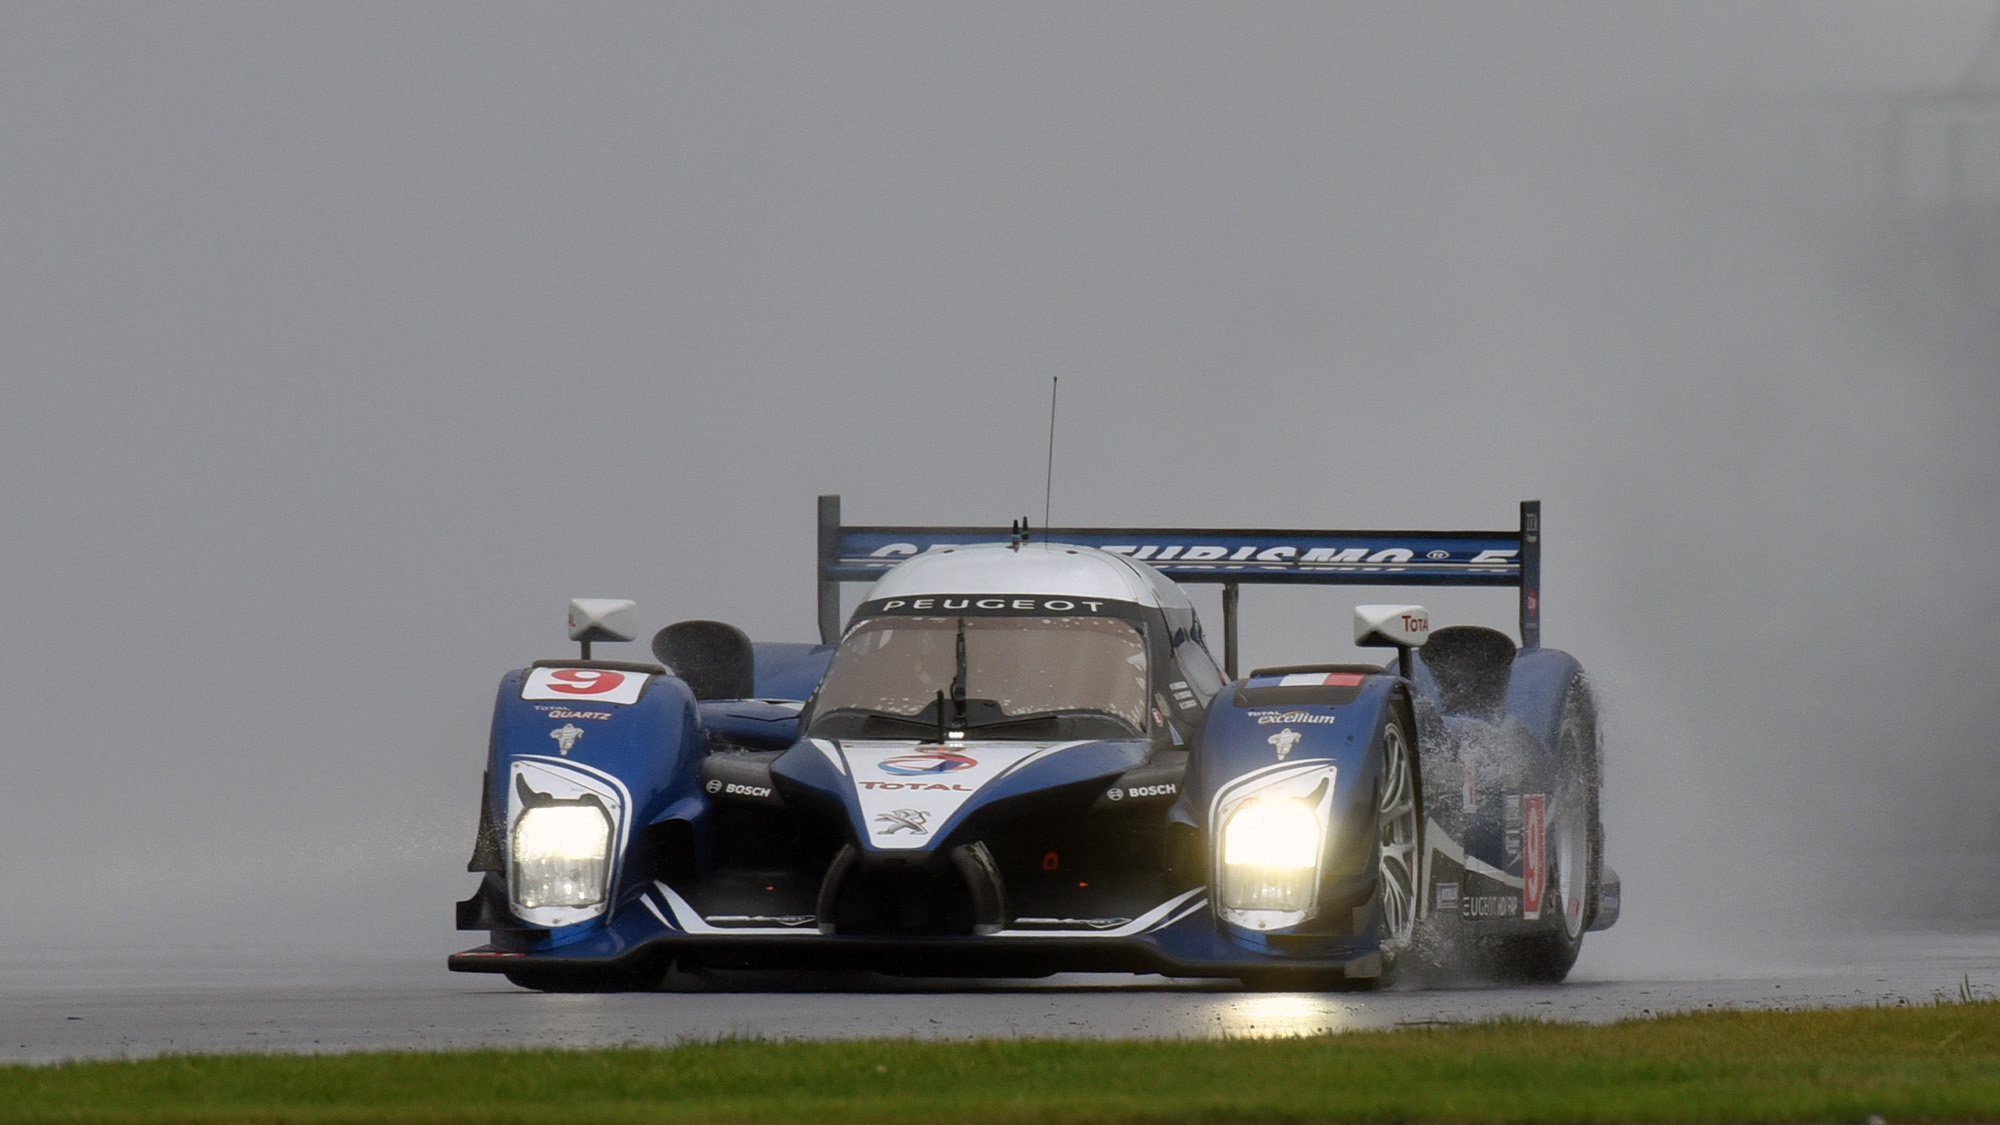 Peugeot 908 at the Classic at Silverstone 2021